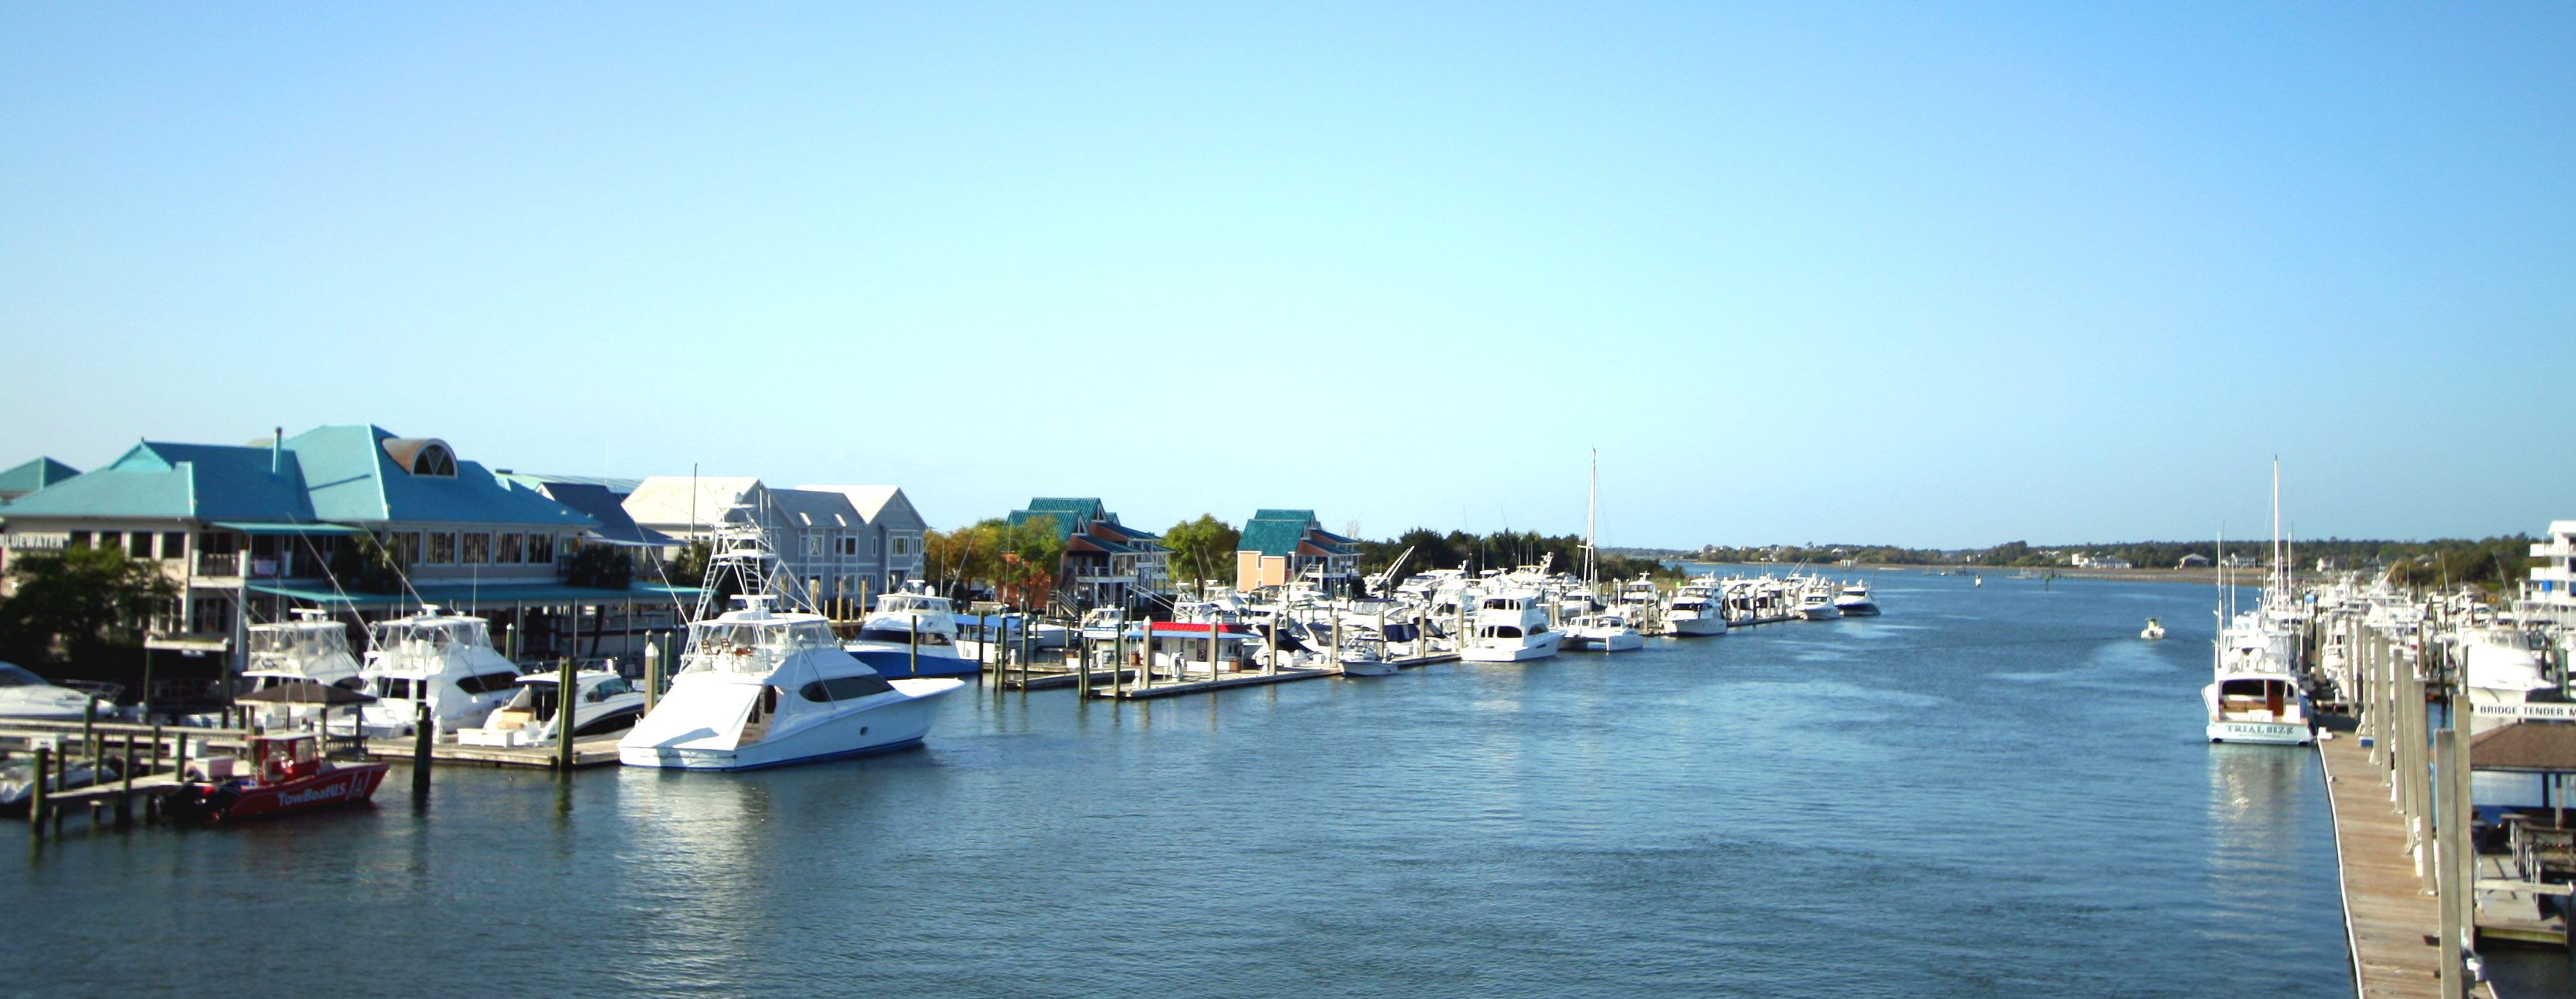 Bridgers Street Wrightsville Beach